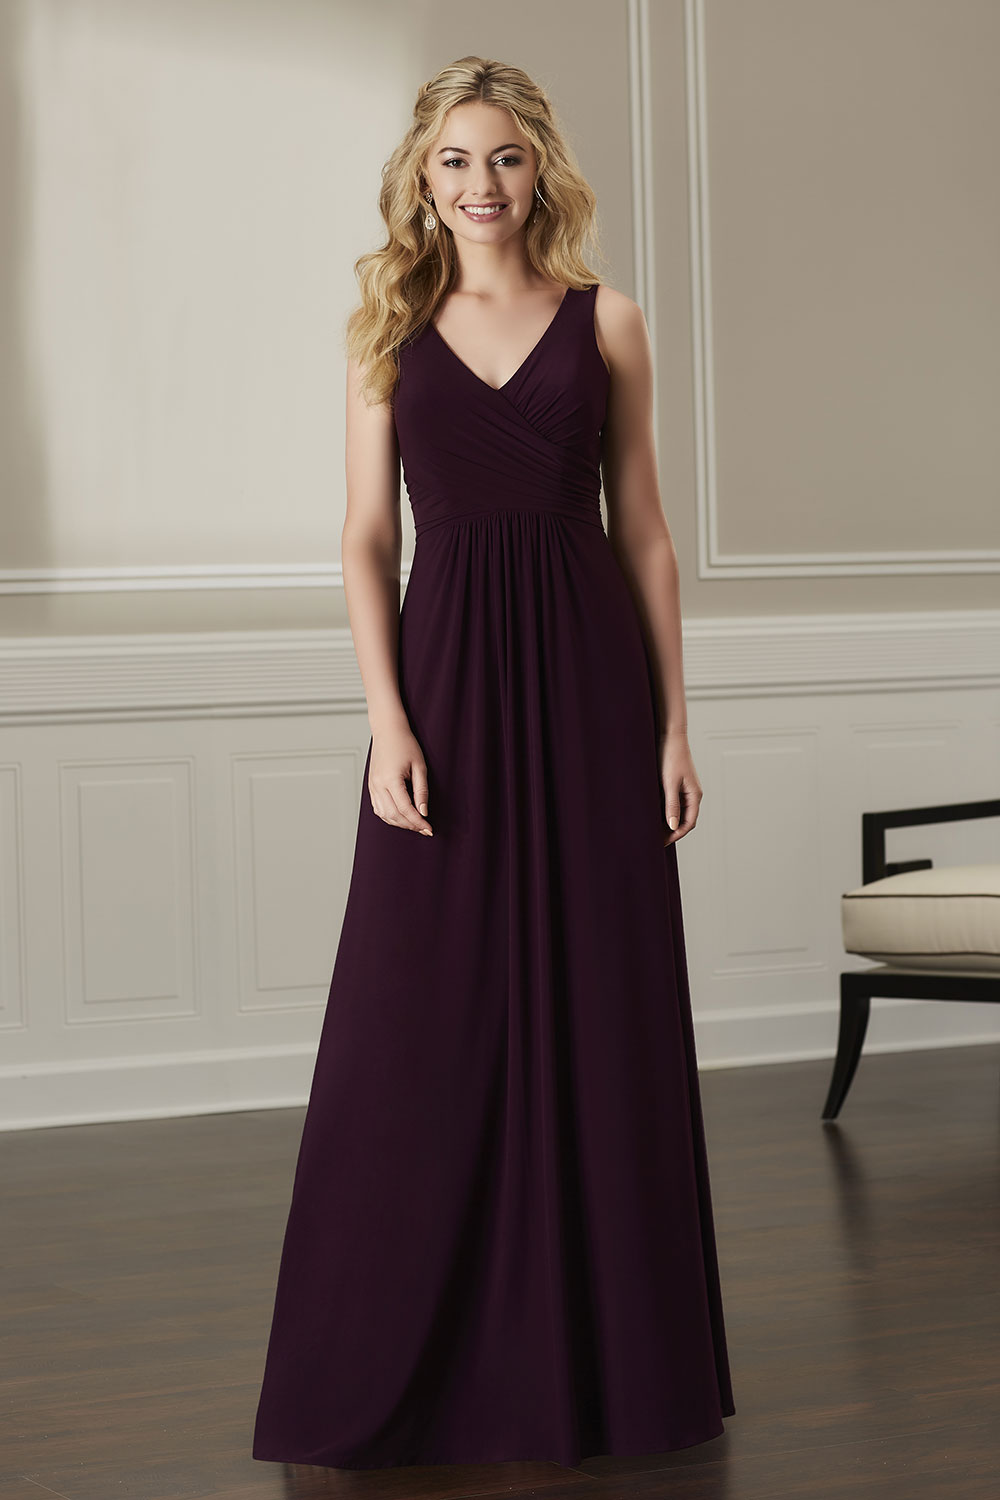 bridesmaid-dresses-jacquelin-bridals-canada-26844